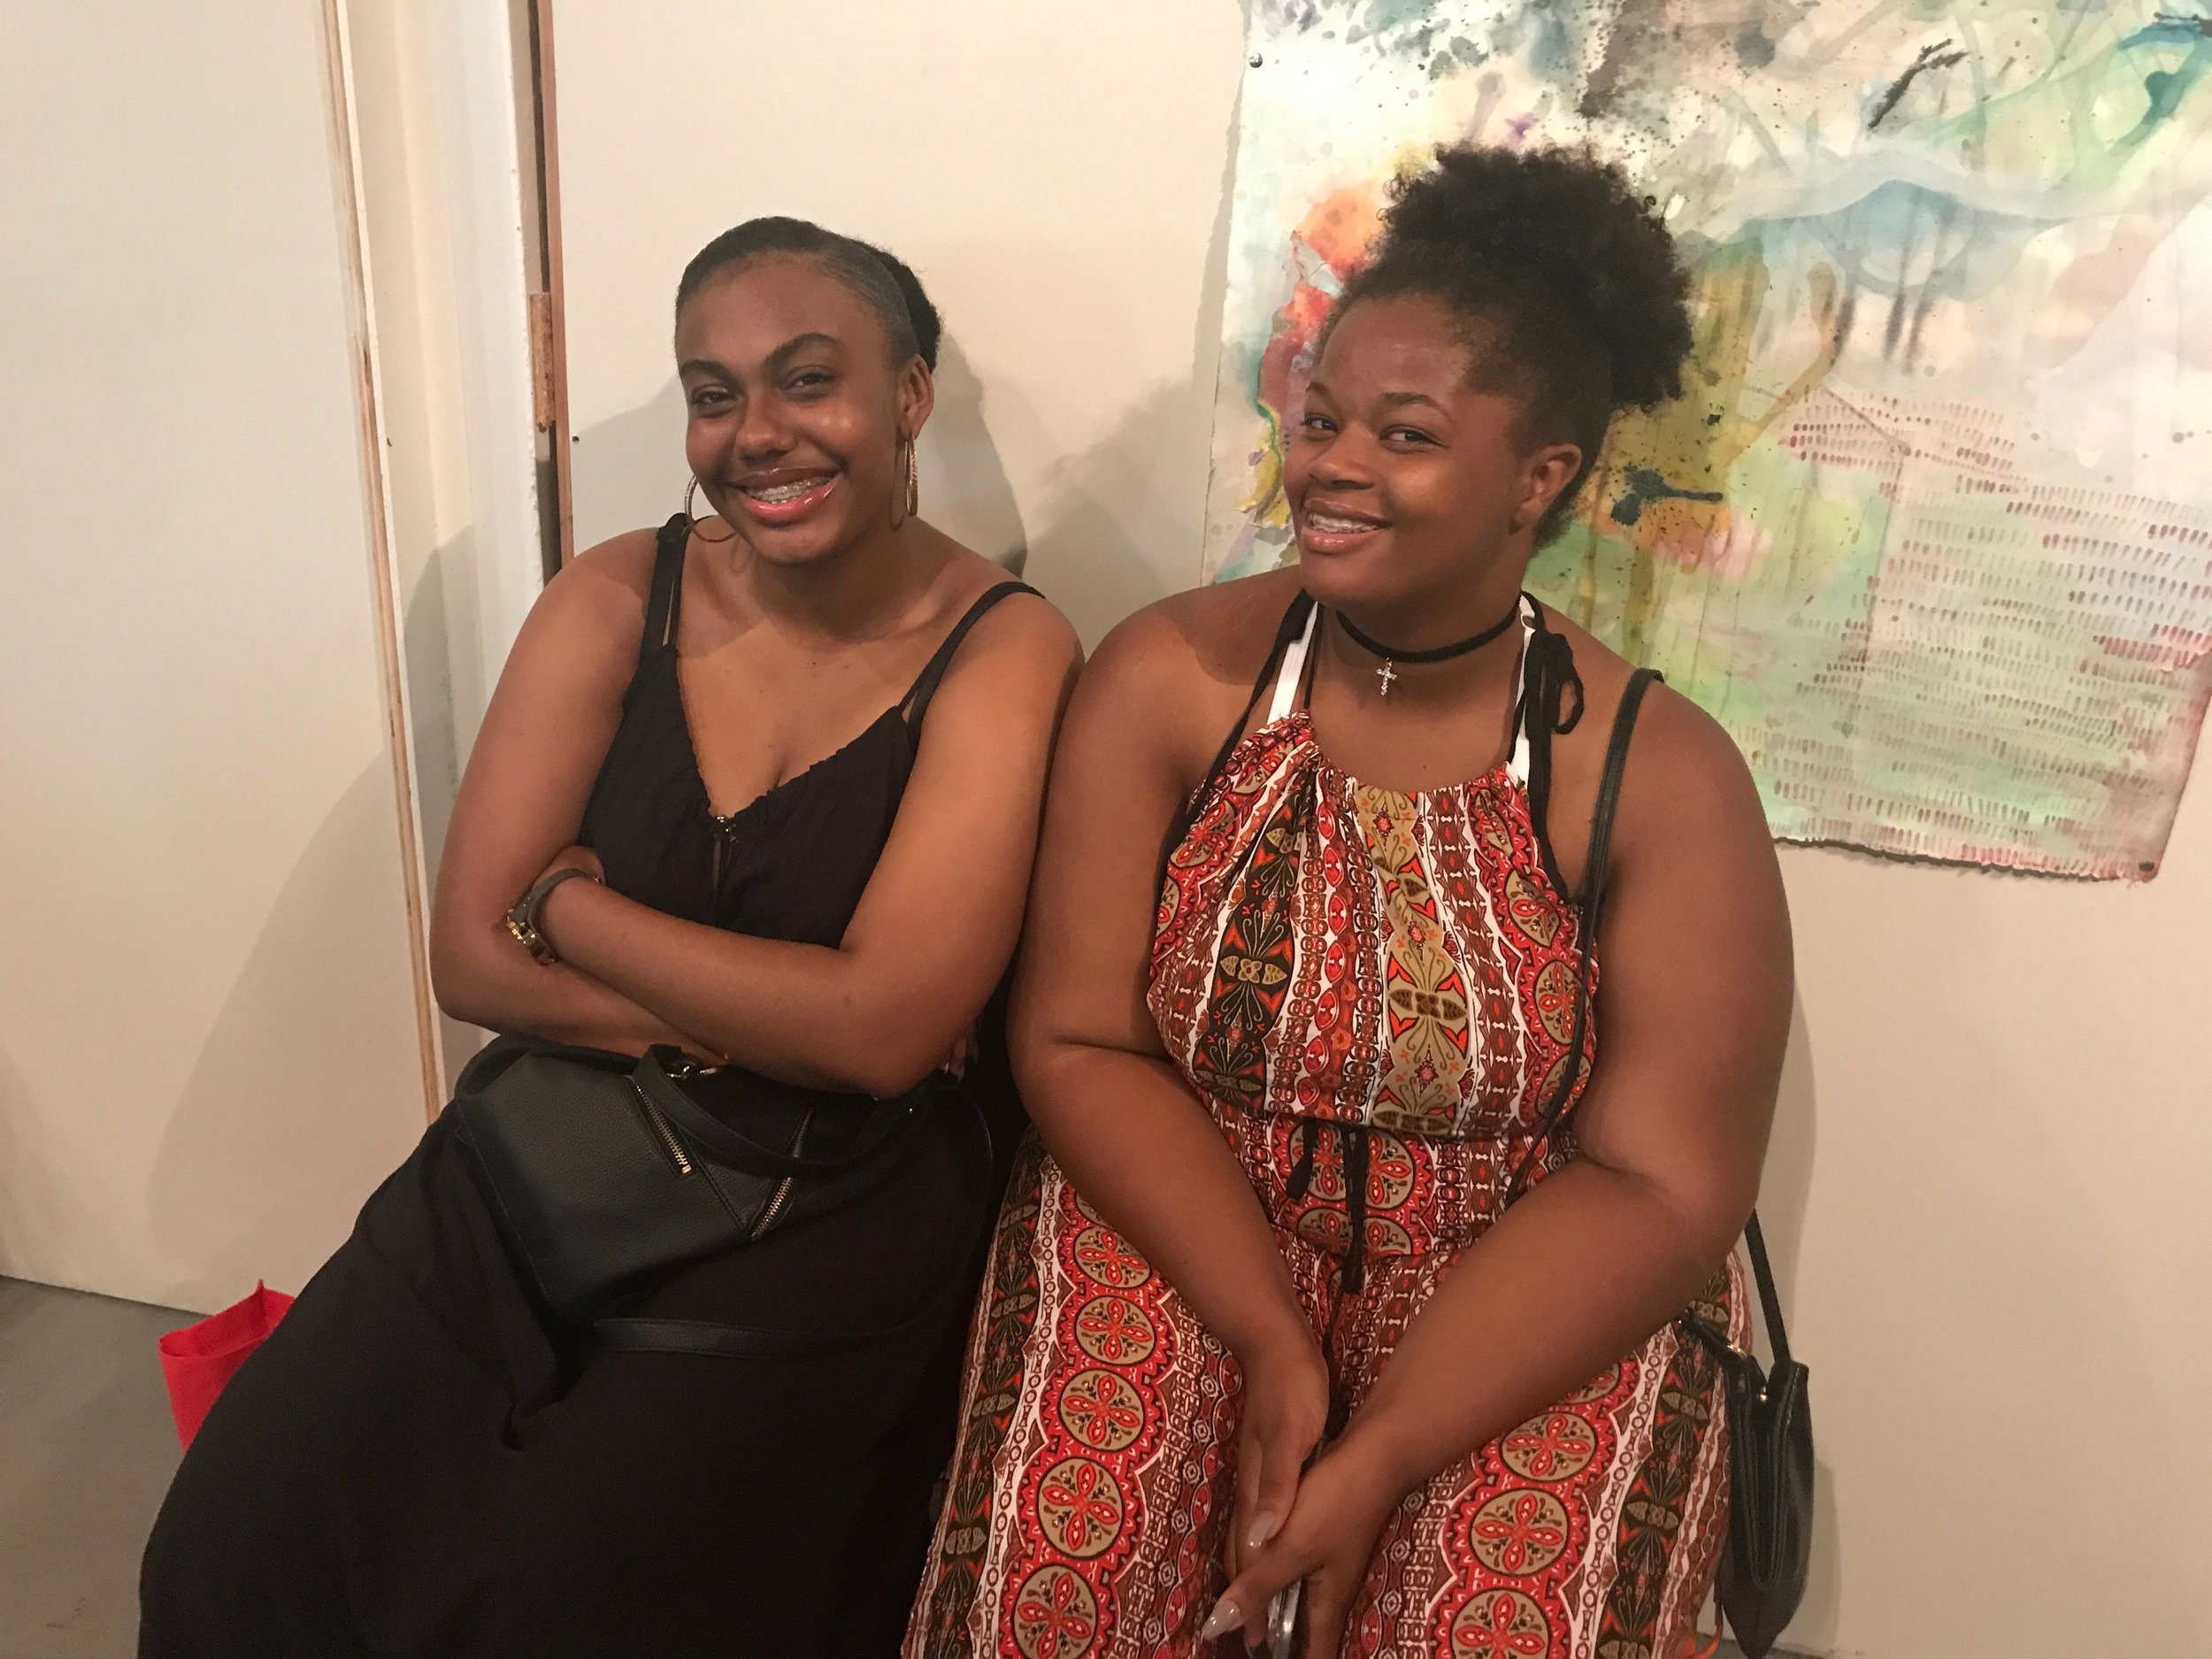 Trinity, left, with fellow intern Brittany at the Kitchen Table Gallery